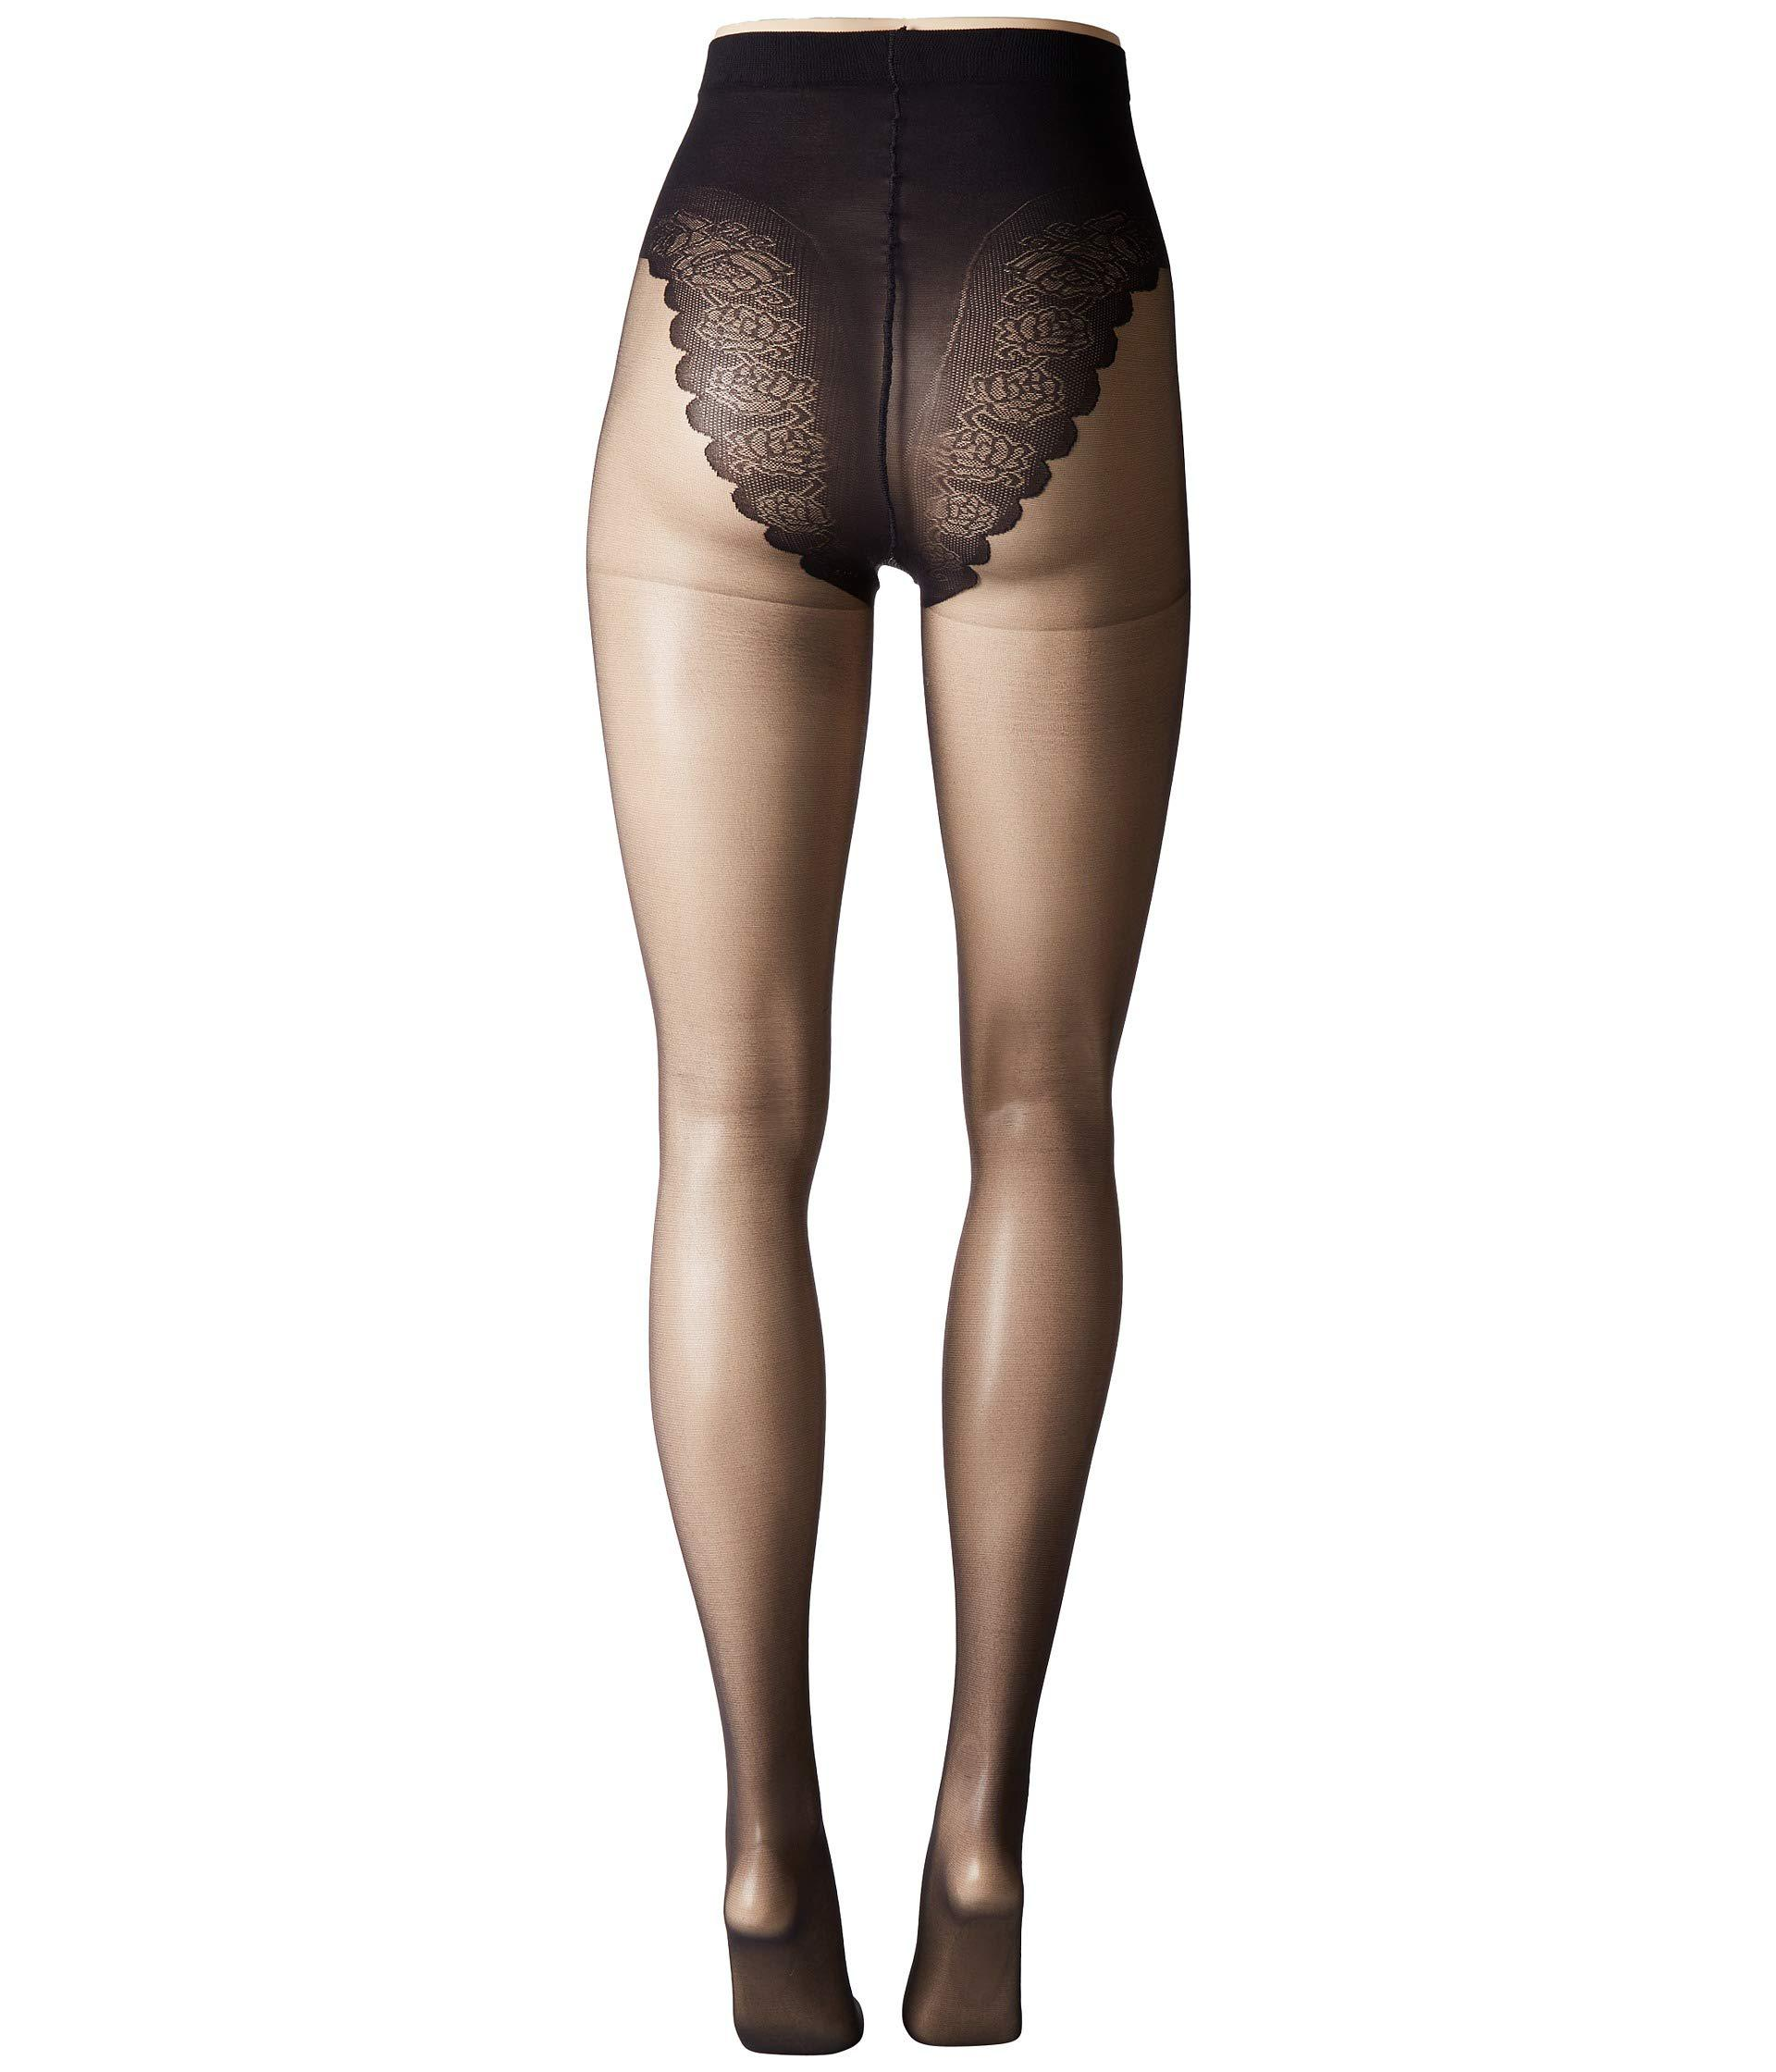 e980c89c9d28c Hue So Sexy French Lace Sheer Control Top Pantyhose (3-pack) (black ...